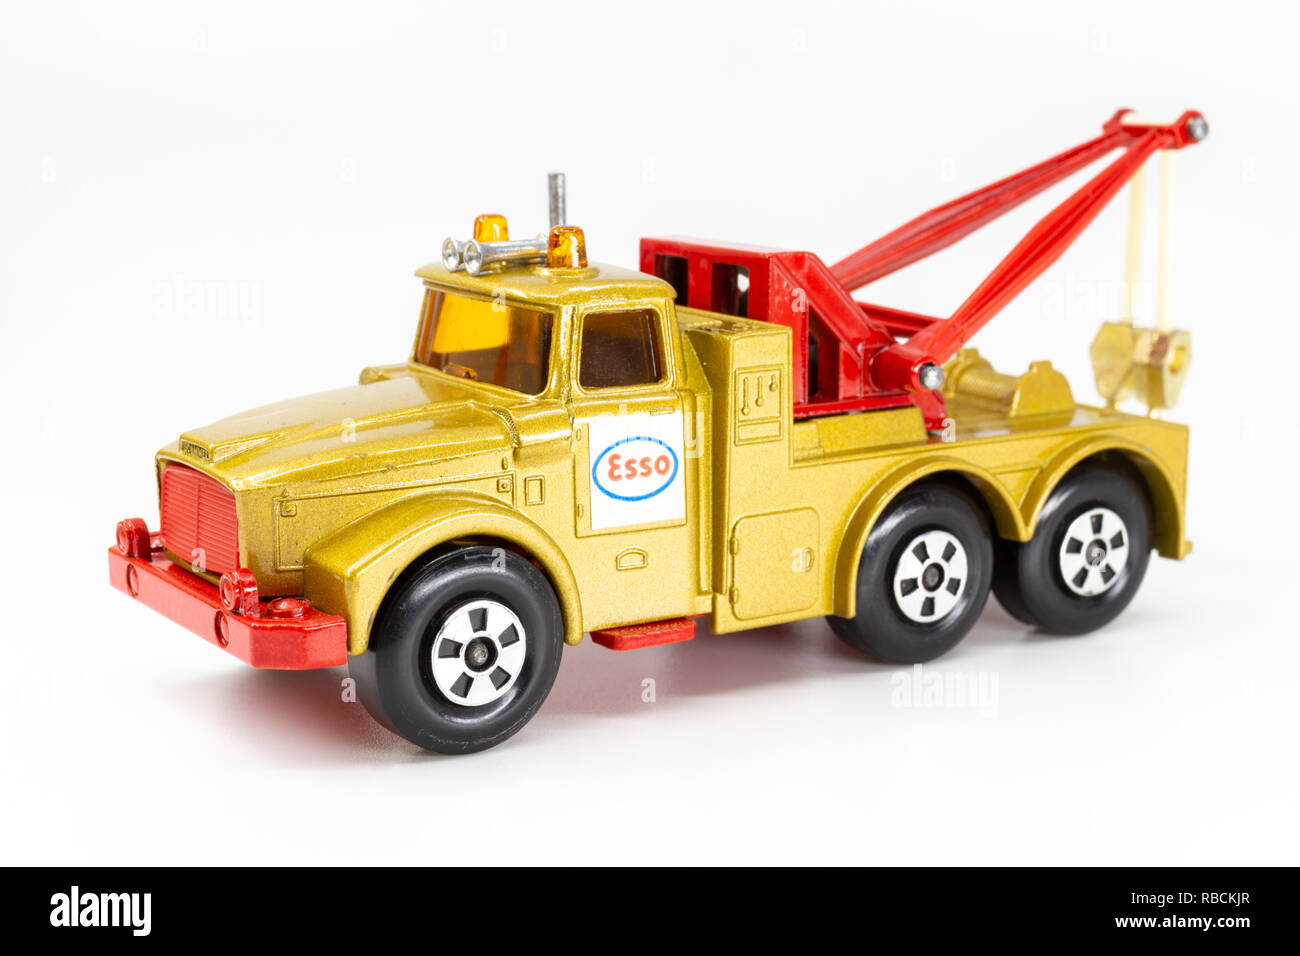 Matchbox model of heavy wreck truck, Super Kings K-2. Front view. - Stock Image